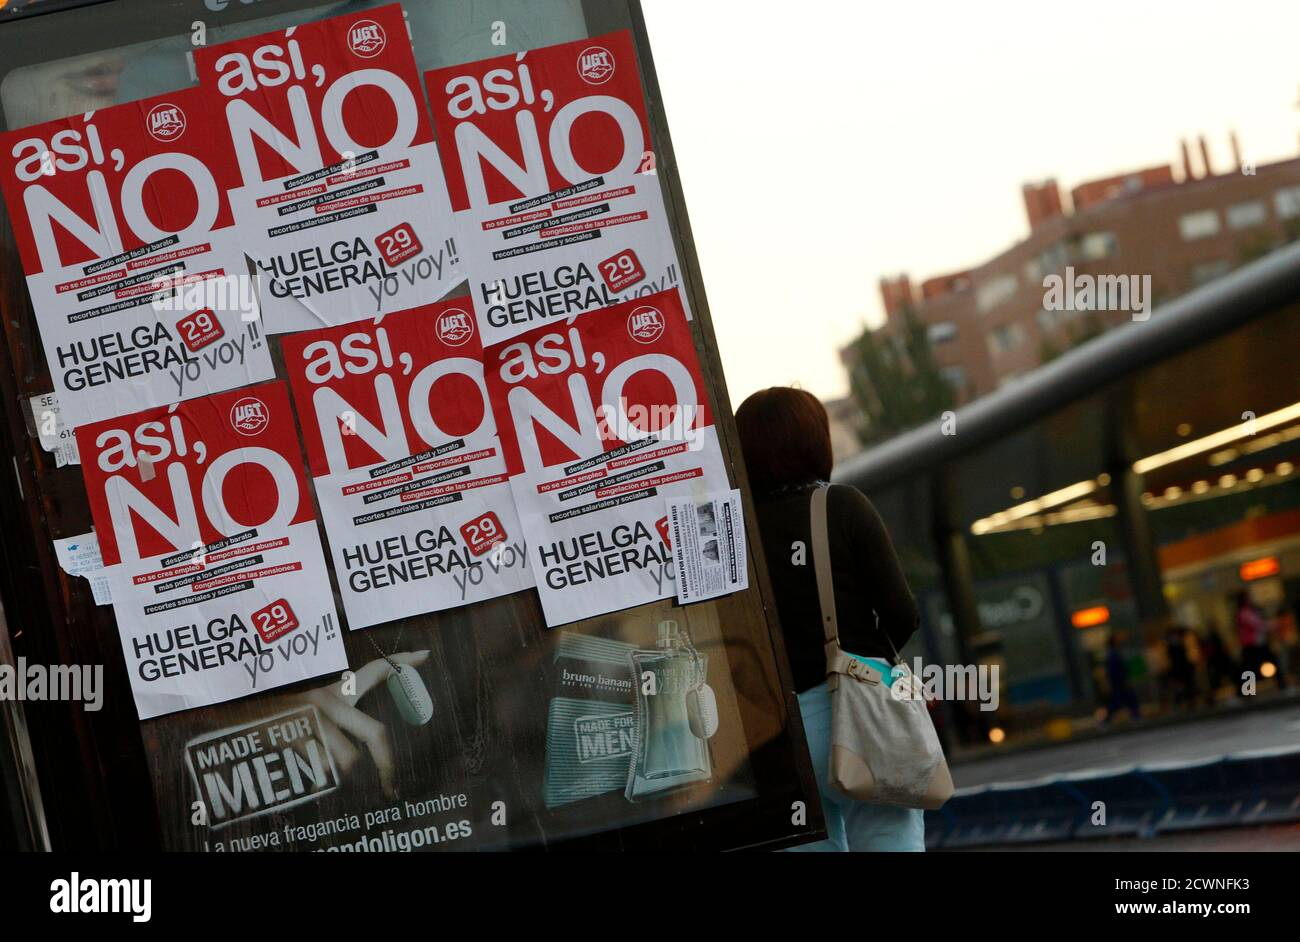 A woman waits at a bus shelter at rush hour during a nationwide general strike in Madrid September 29, 2010. Spanish labour groups, including the two largest unions CCOO and UGT, have called the first general strike in eight years to protest against spending cuts the government says are needed to allay concerns the country could slide into a debt crisis that would threaten the unified euro currency. Banners read 'Not that way (related to the government), general strike, I'm going!'.  REUTERS/Sergio Perez (SPAIN - Tags: CIVIL UNREST BUSINESS EMPLOYMENT) Stock Photo